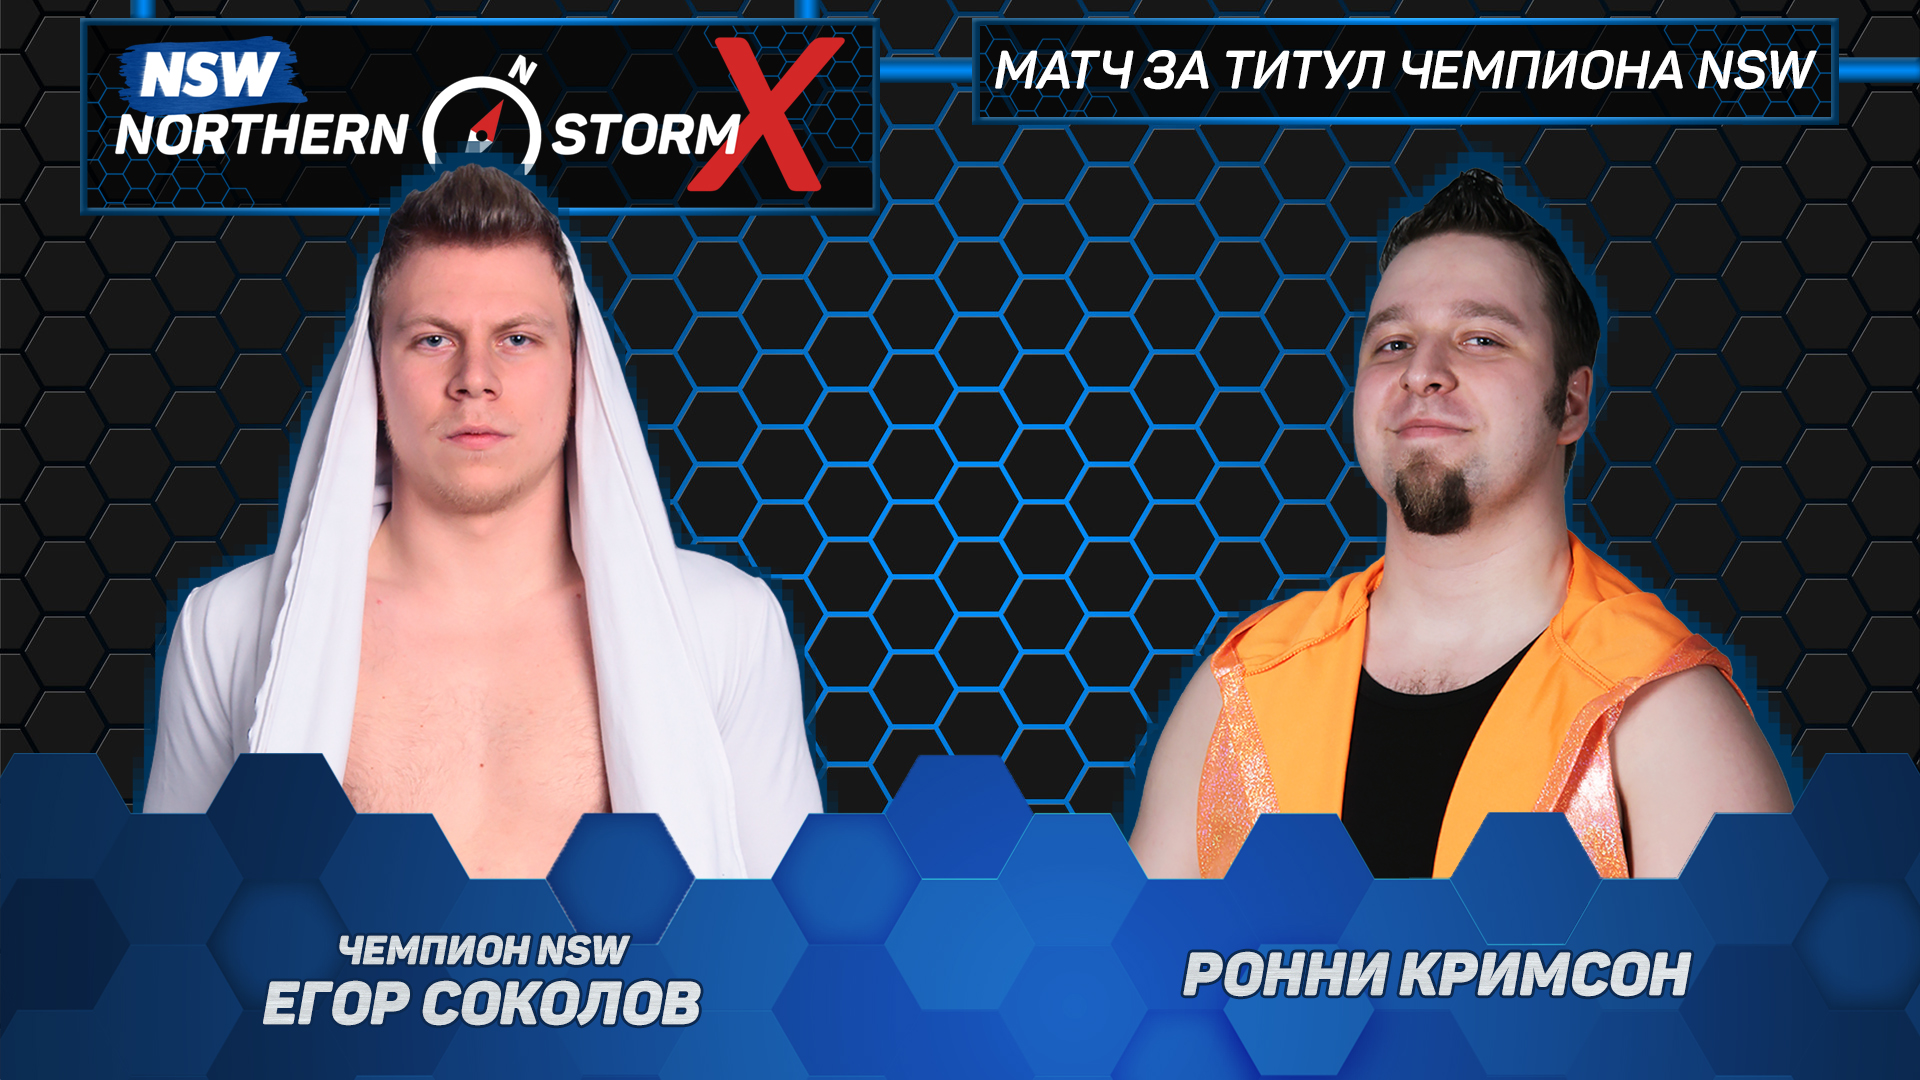 NSW Northern Storm X: Егор Соколов (ч) против Ронни Кримсона